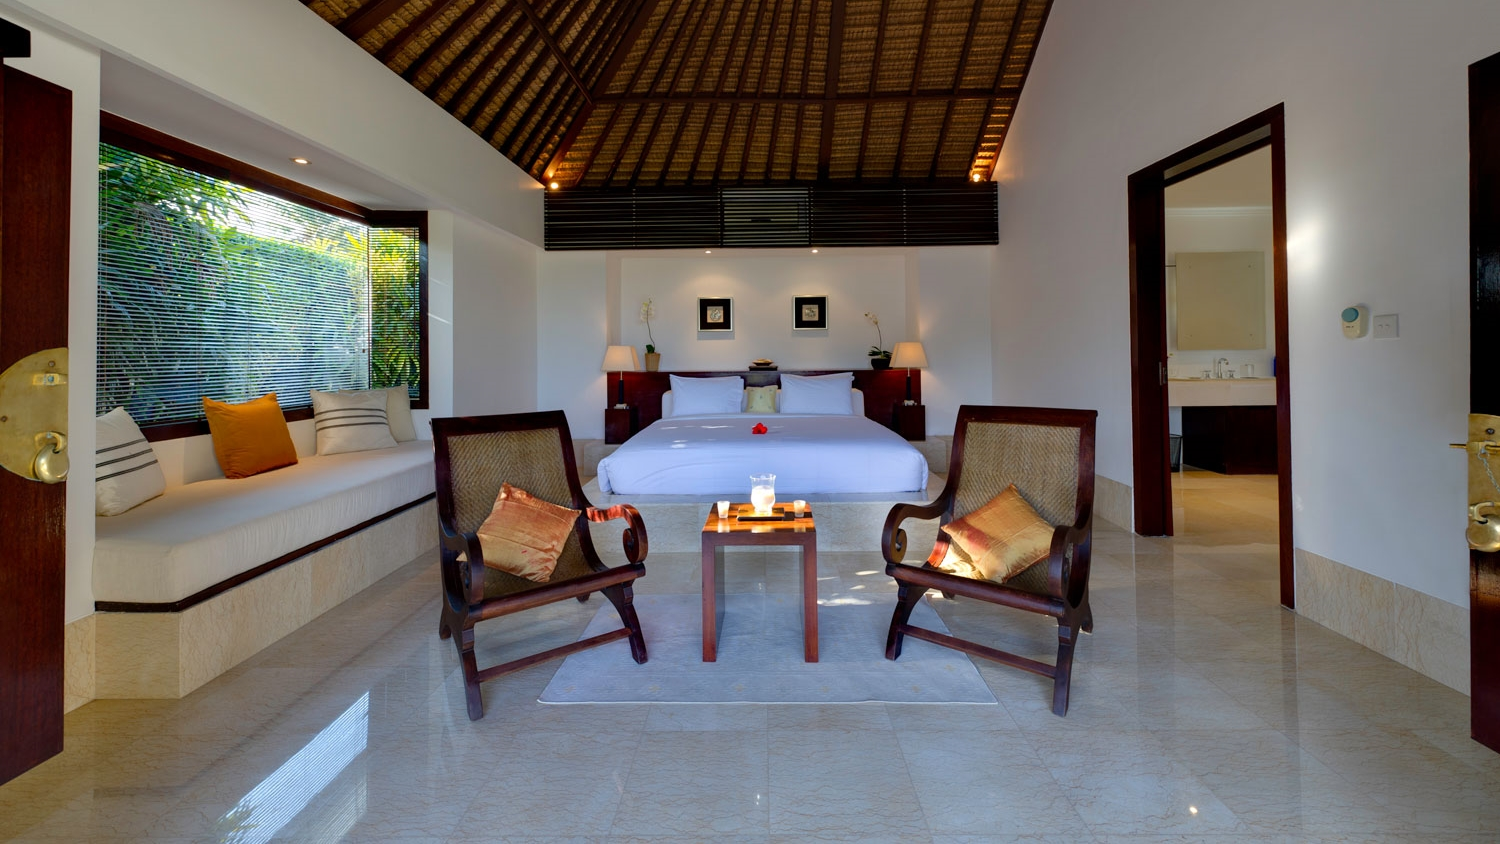 Bedroom with Chairs and Sofa - Villa Kailasha - Tabanan, Bali